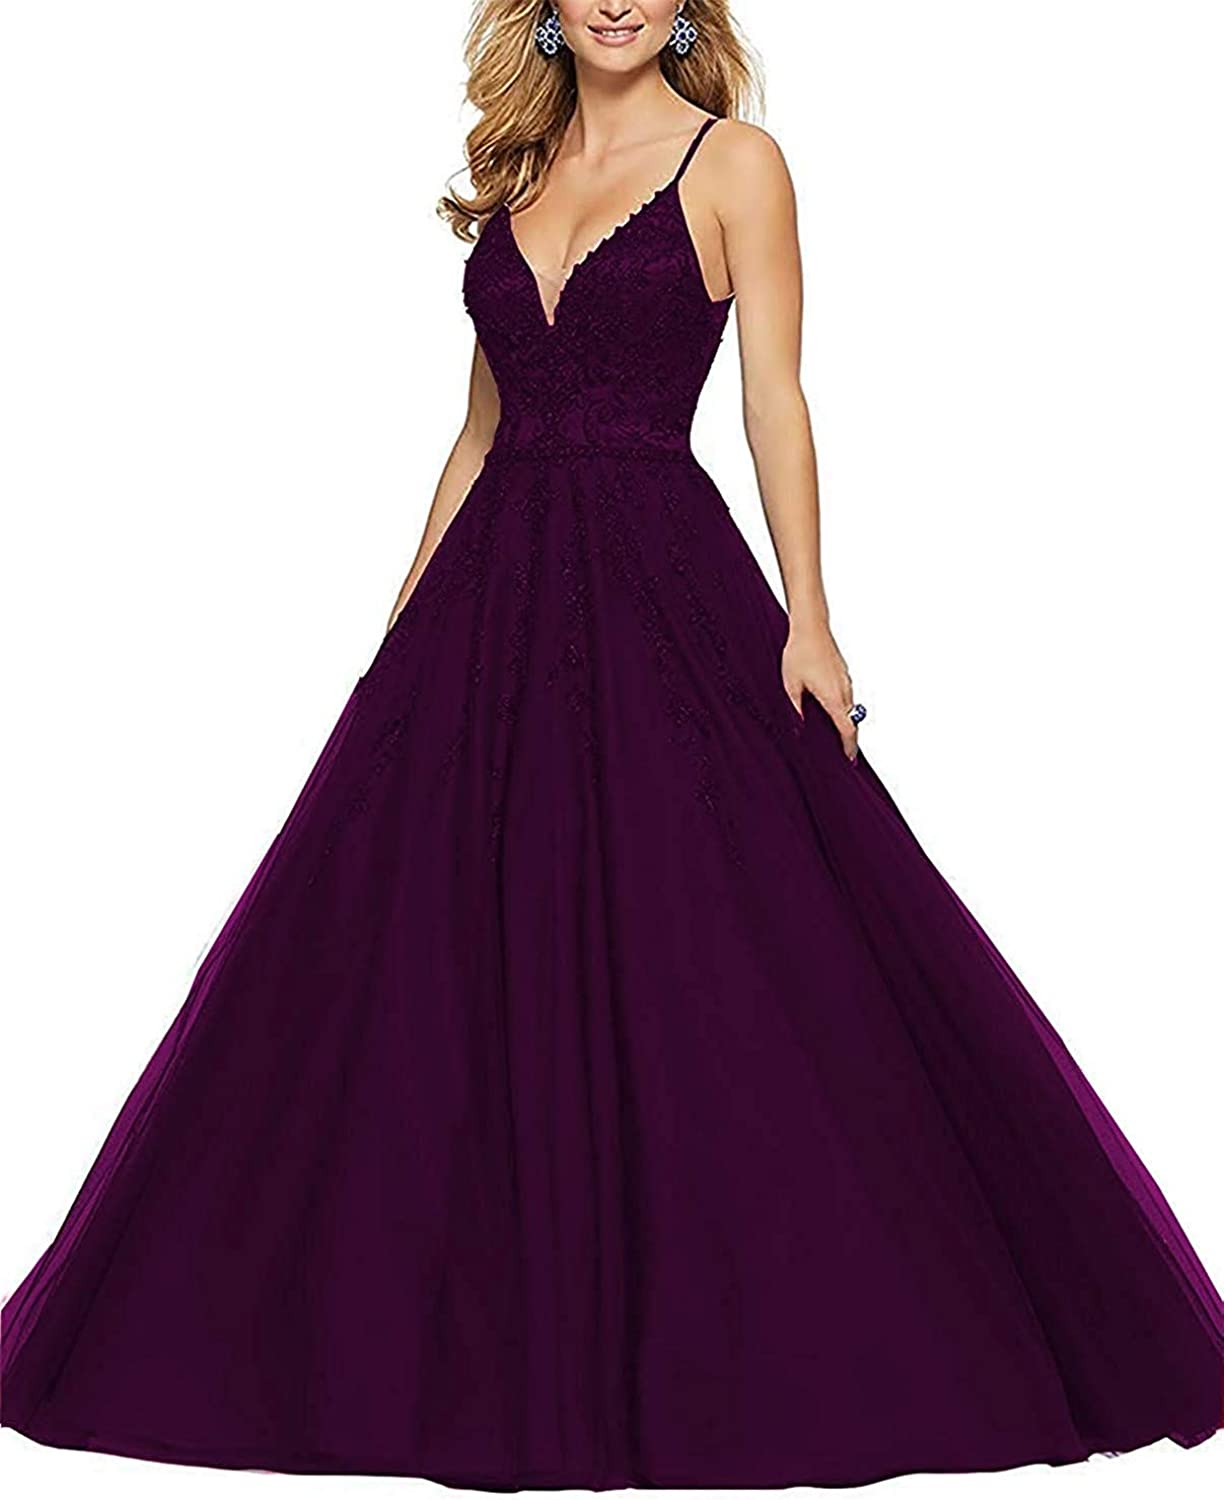 Sulidi Womens Long Lace Beaded V Neck Prom Dresses Spaghetti Straps Ball Gown Evening Formal Party Gowns C122